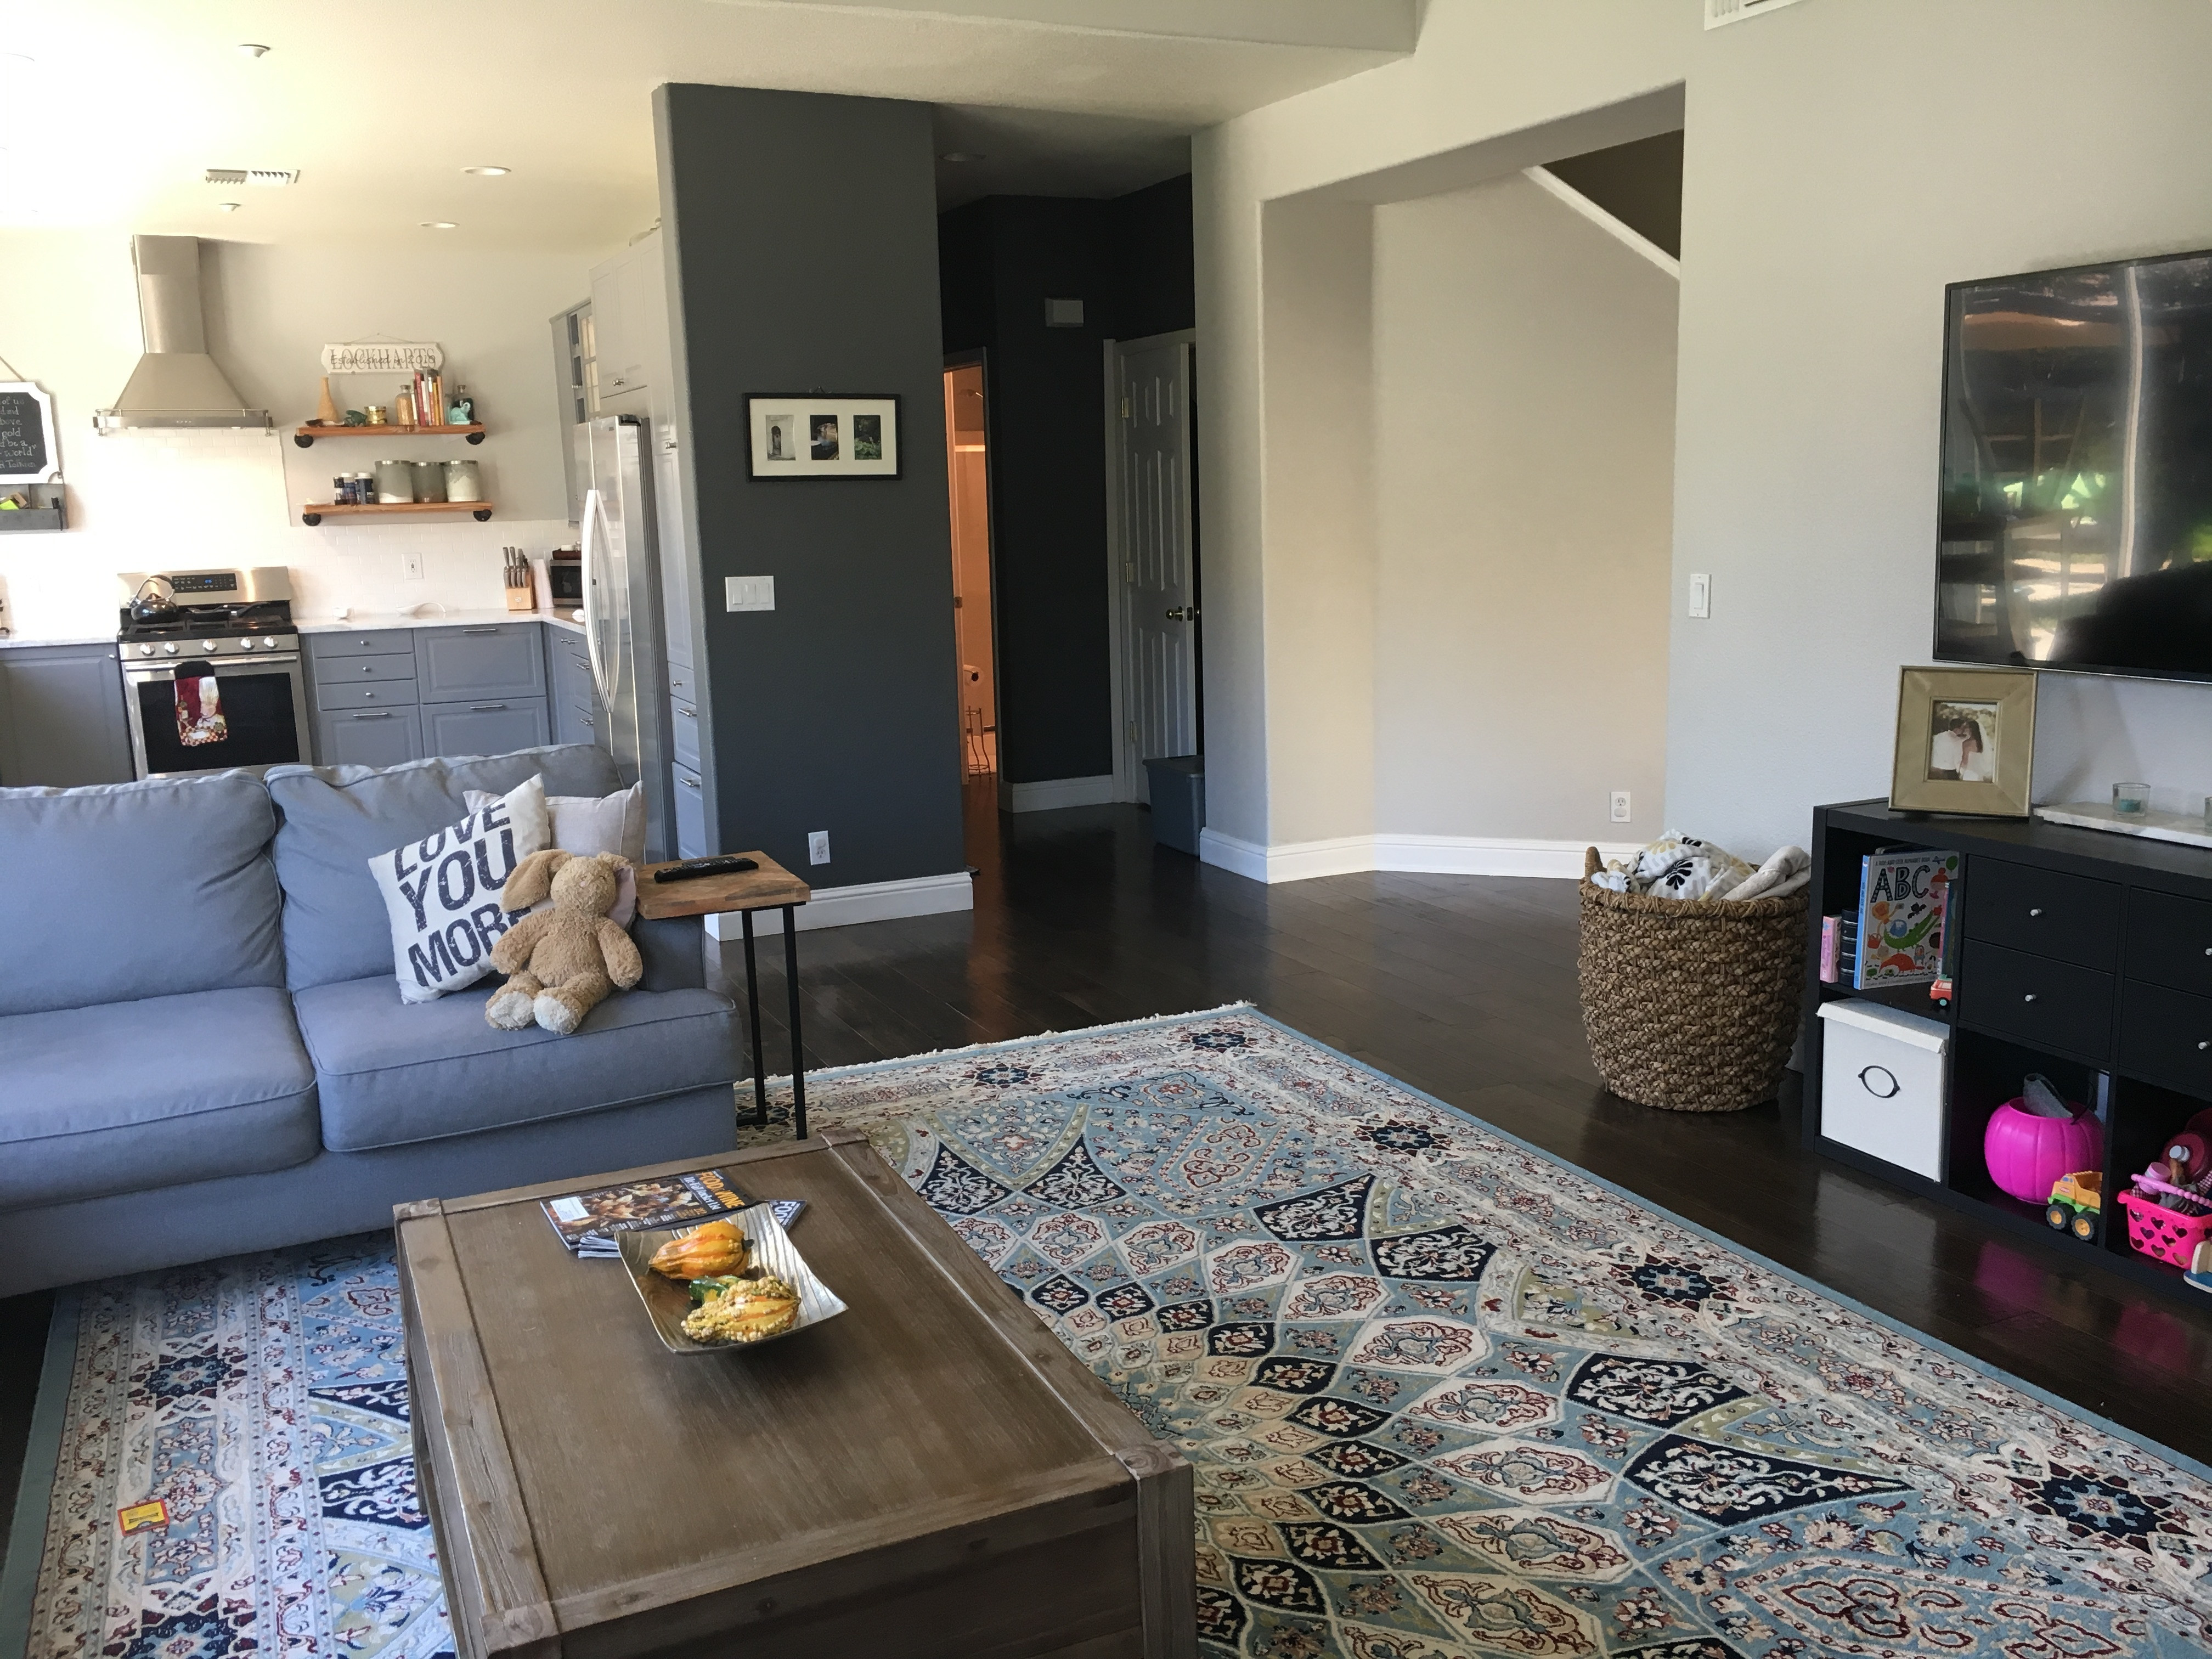 armstrong hardwood flooring lancaster pa of large family home in the heart of northern california boligbytte inside previous next